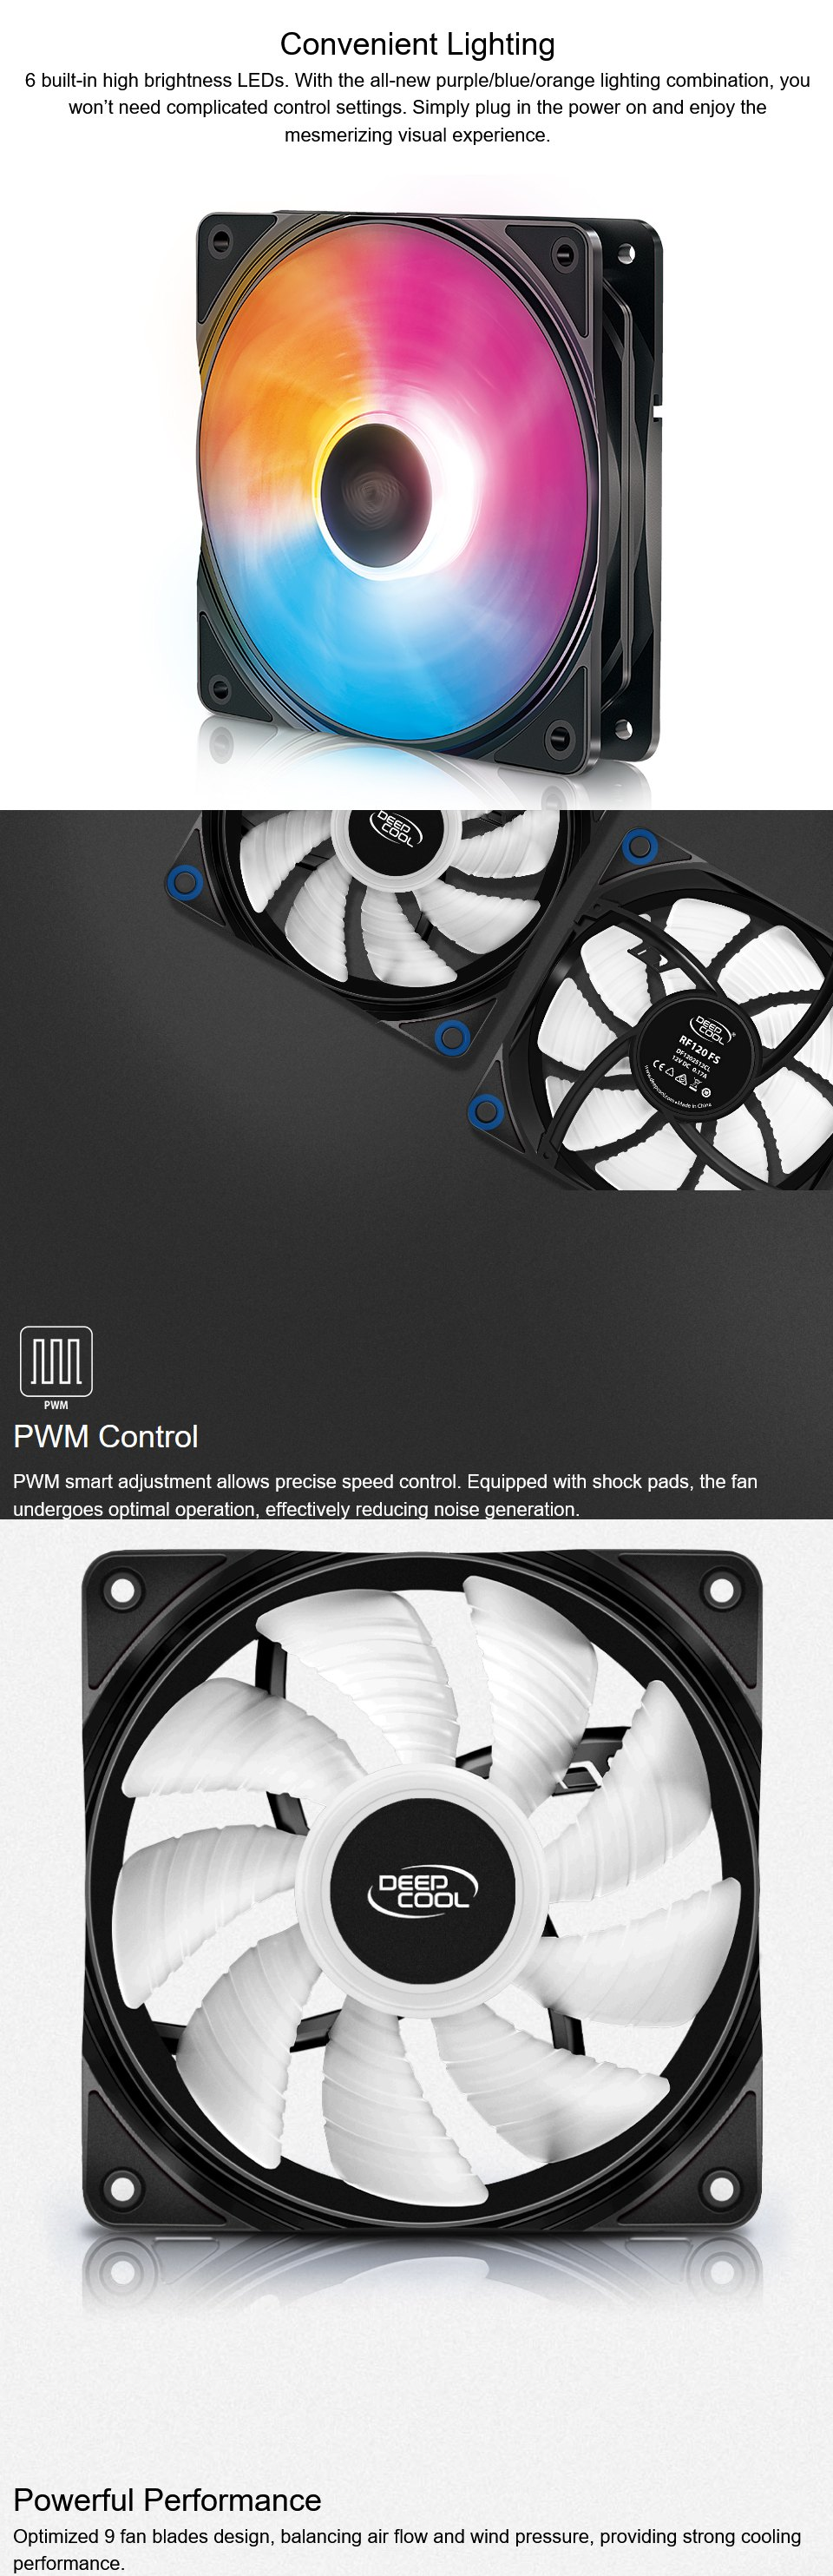 Deepcool RF-120 FS RGB Fan 120mm features